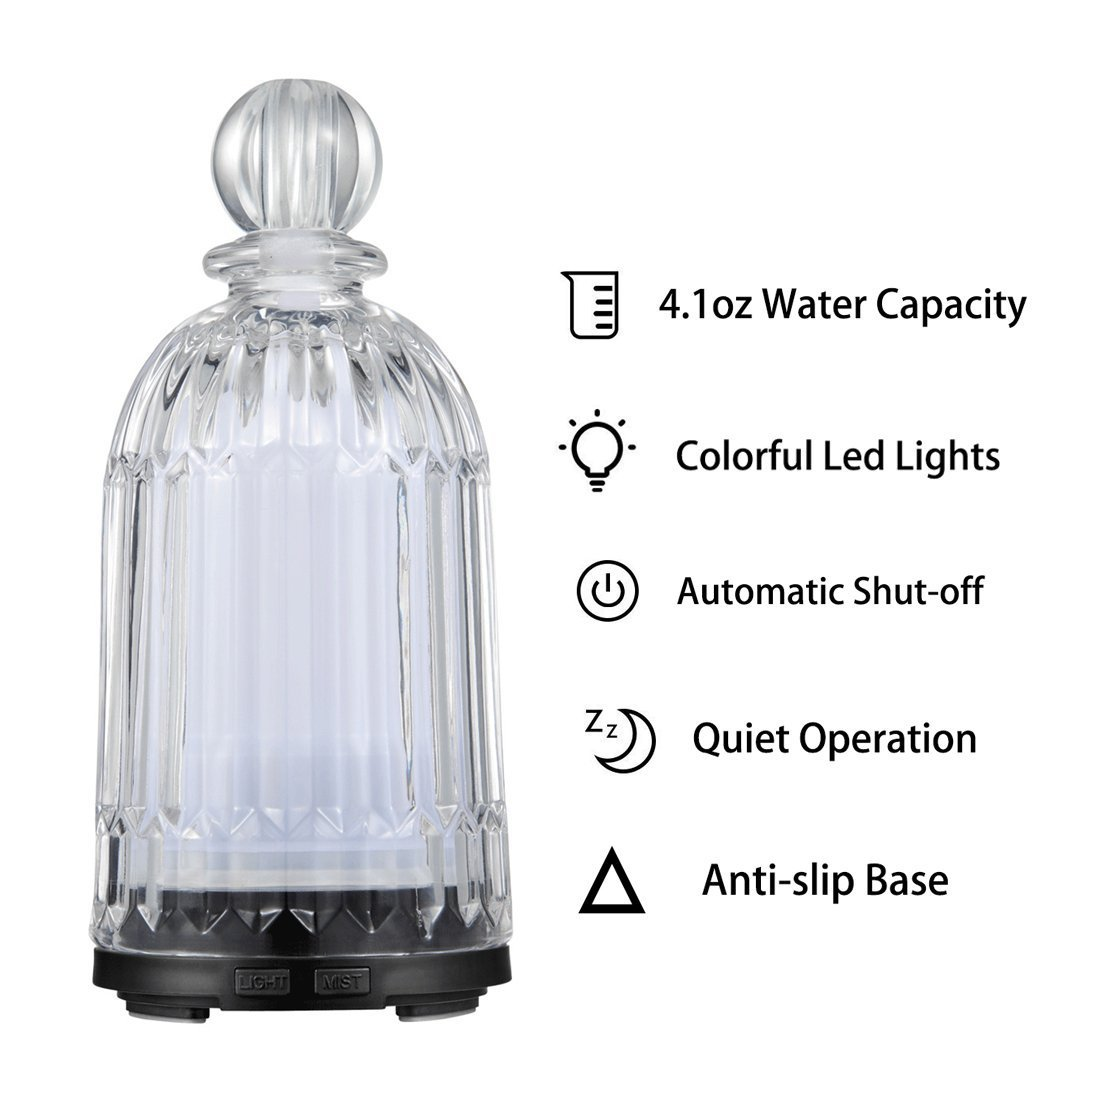 LATITOP Glass Oil Diffuser Ultrasonic Aromatherapy diffuser for Essential Oils with 7-color LED Lights, Automatic Shut-off Function (Black)